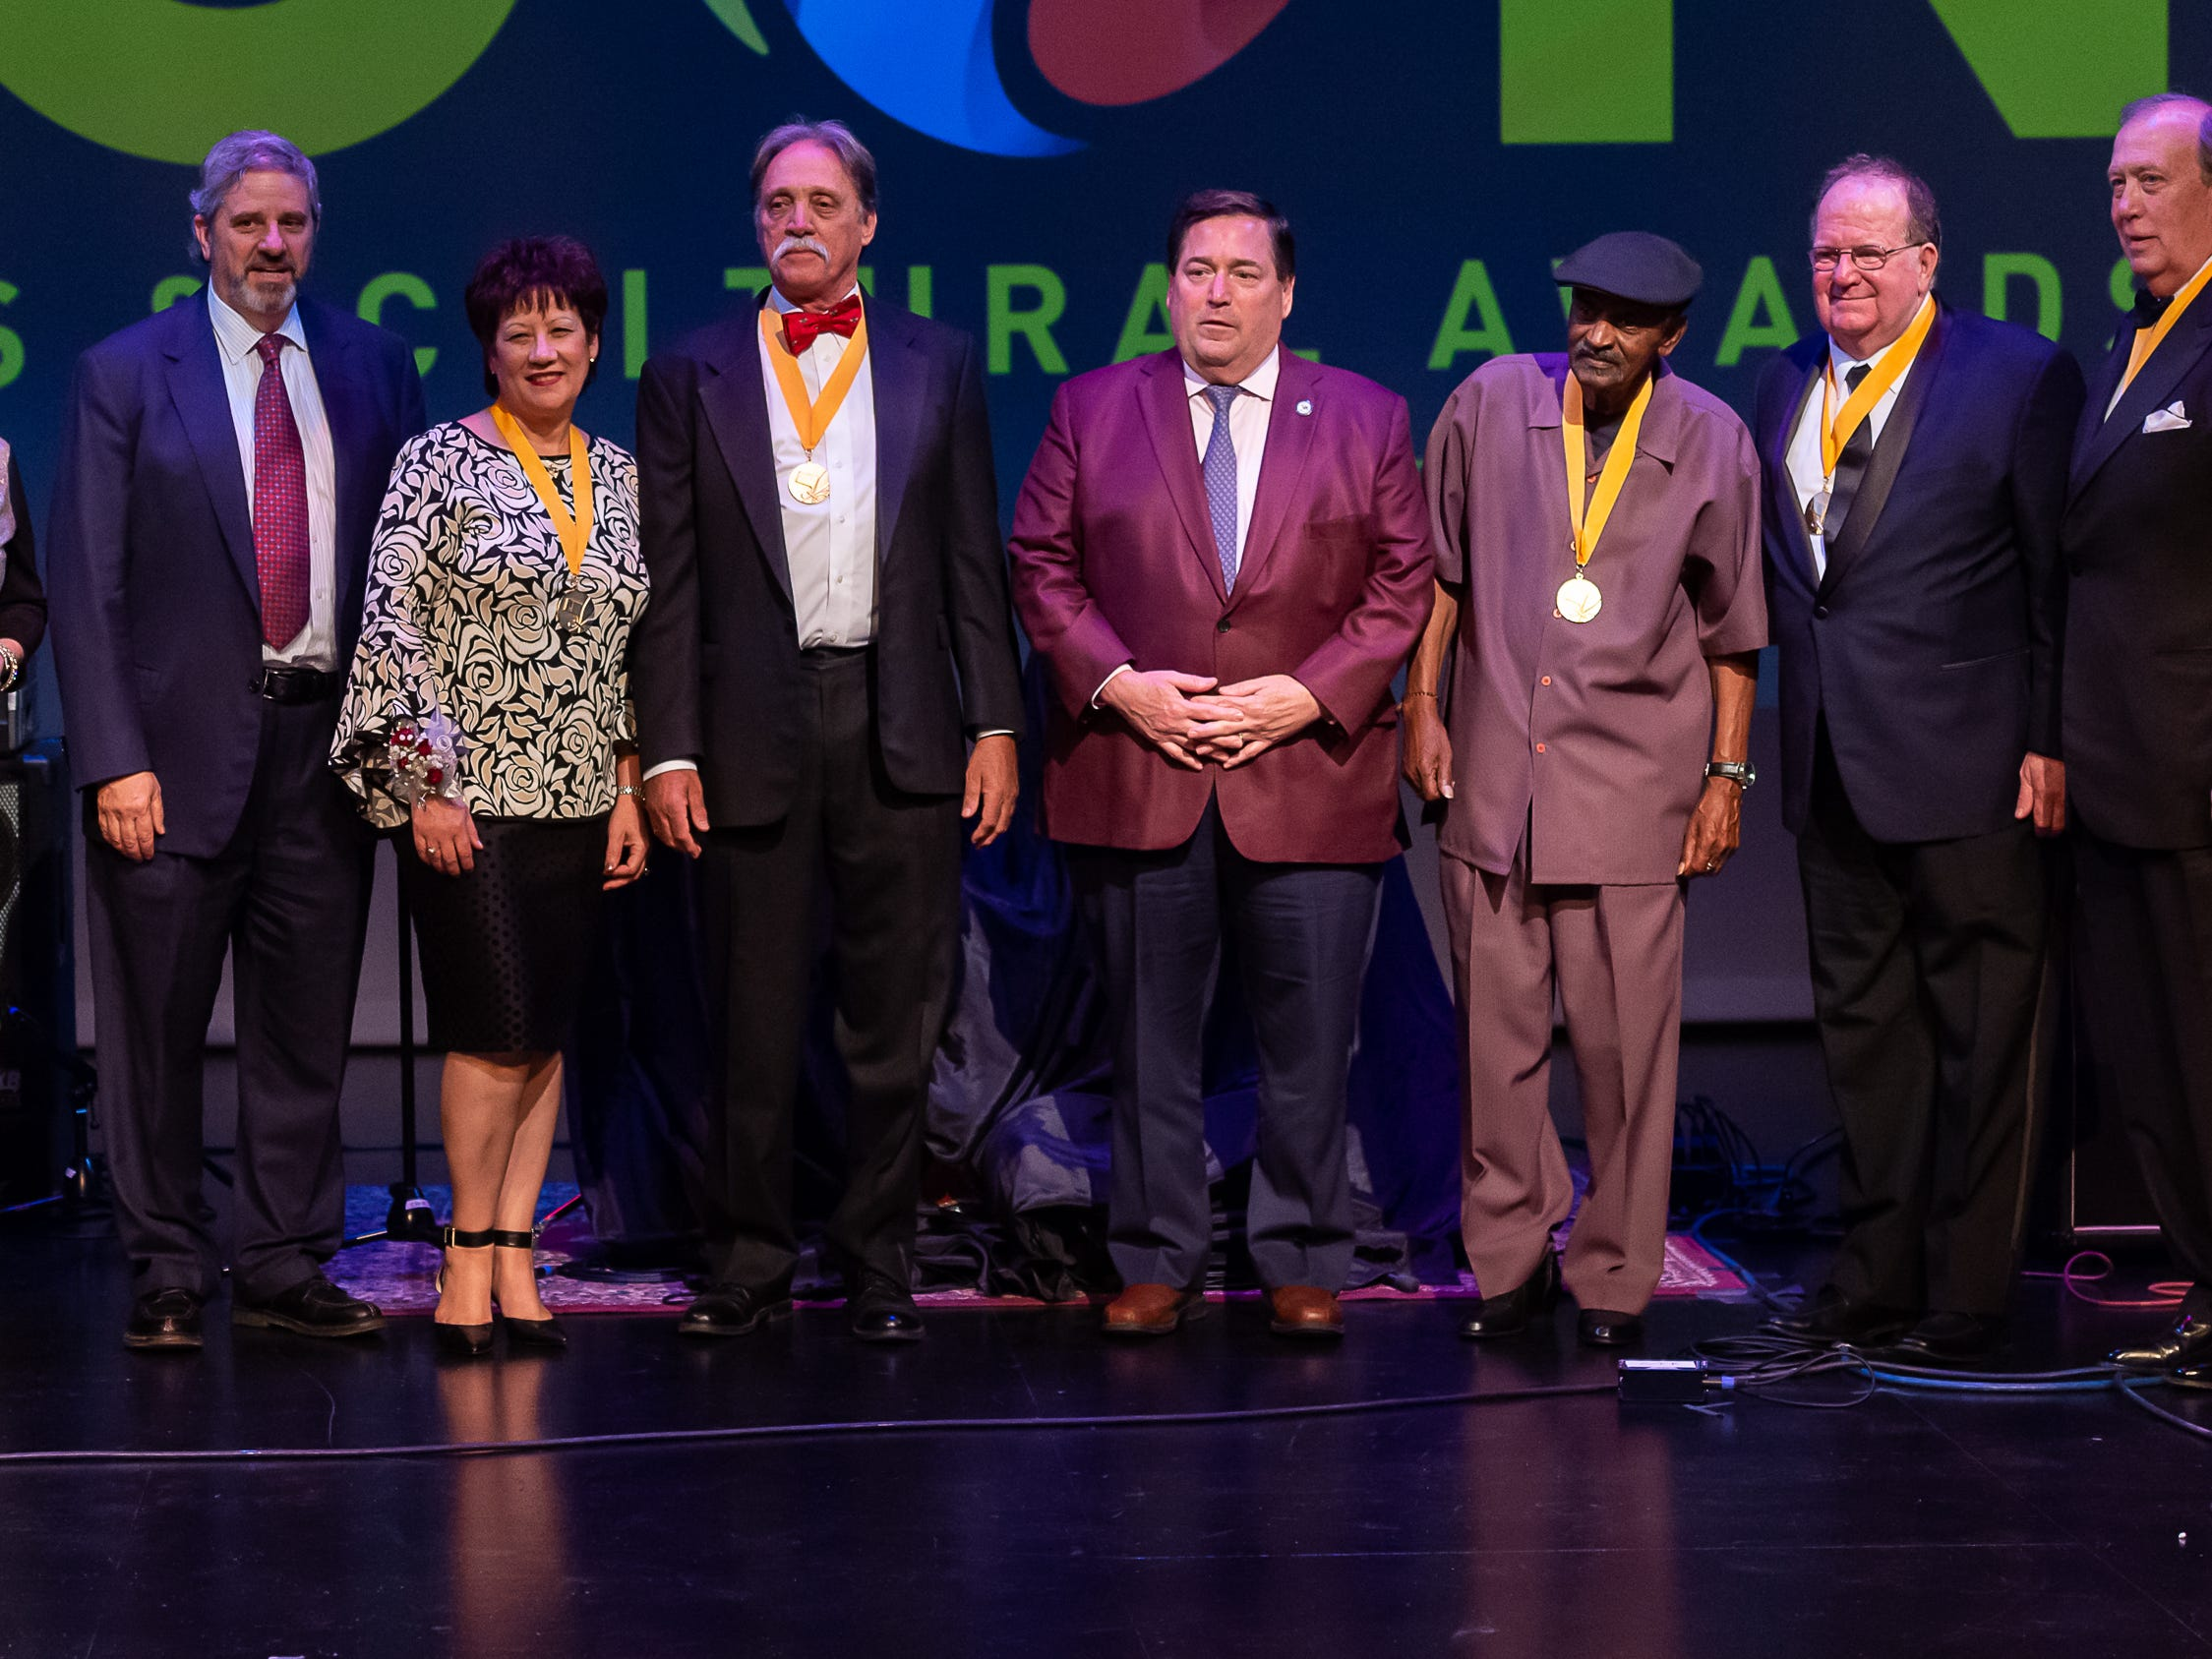 The 2019 Icon Arts & Cultural Awards Gala honoring Acadiana's Legends. Thursday, April 11, 2019.